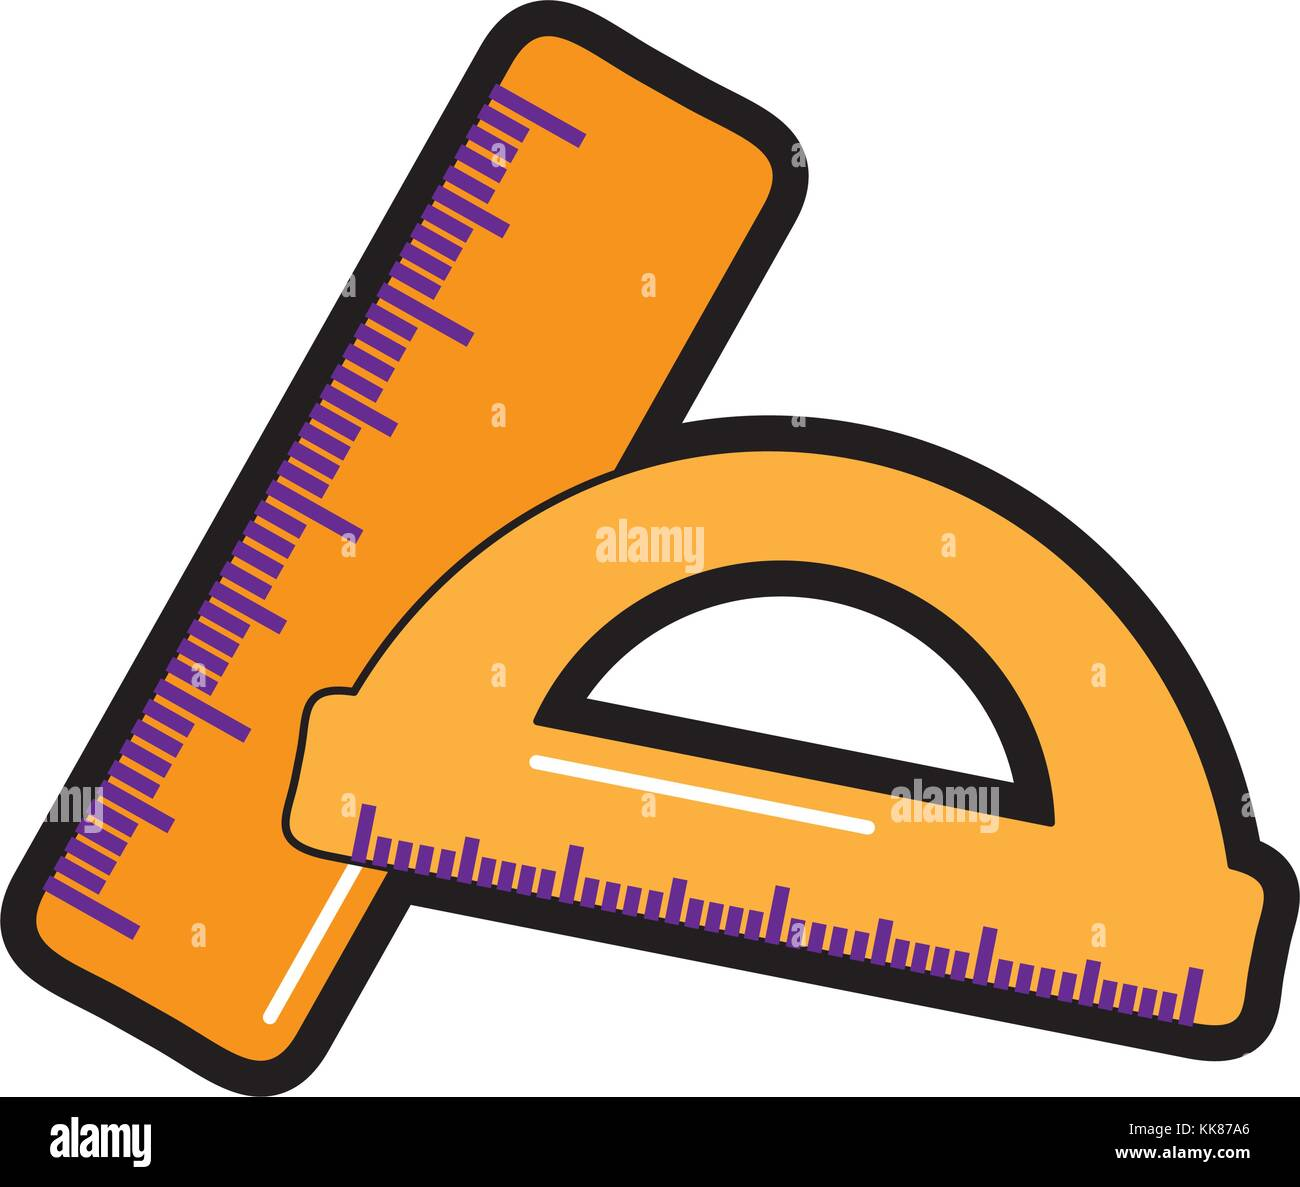 rulers school supplies icon image  - Stock Vector